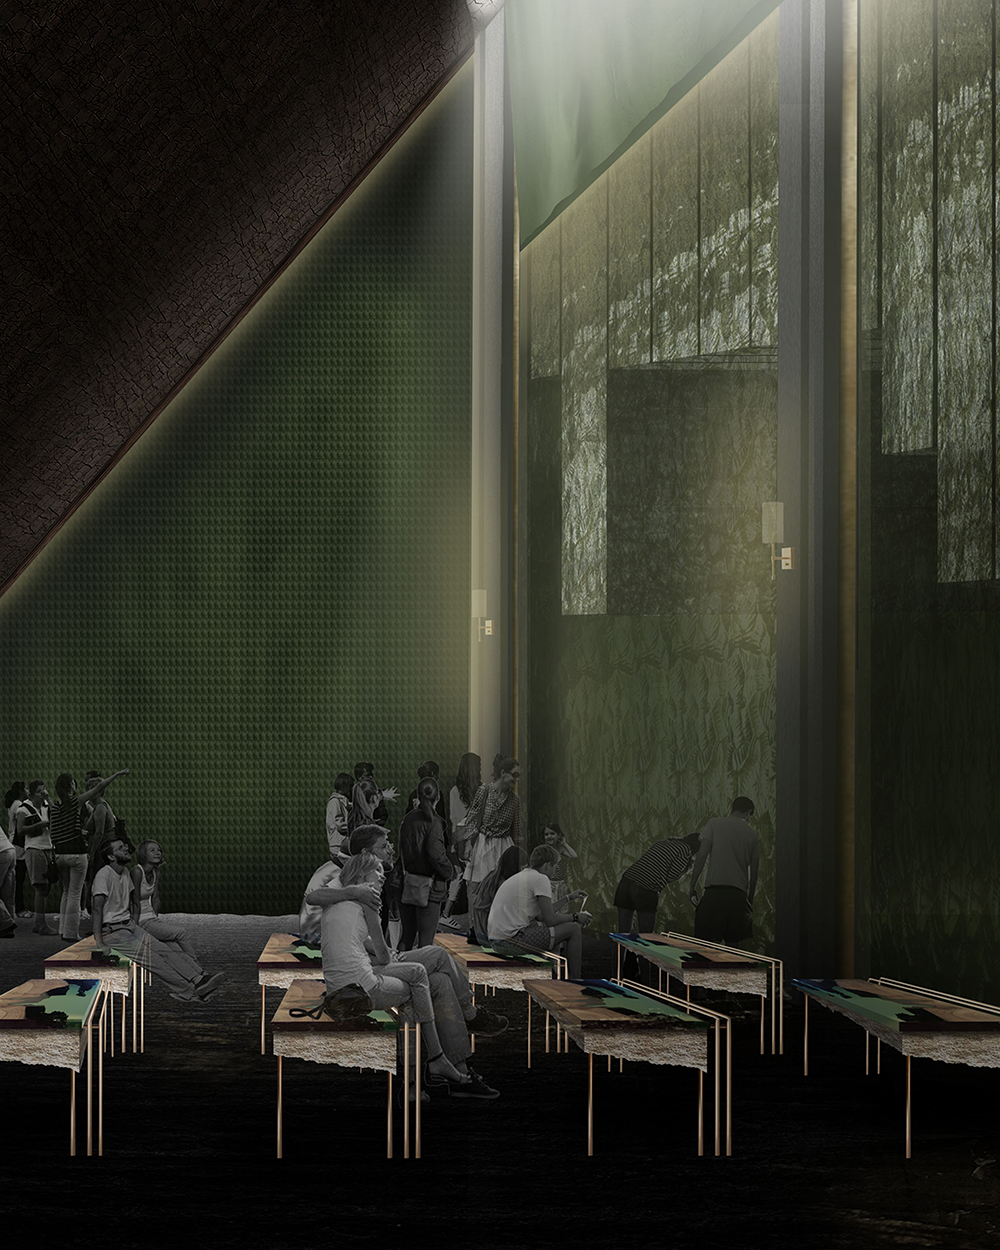 Dulux Colour Awards 2019 Student Commendation Project _ The Performance Terrain Theatre (NZ) by Lauren Gibbs, Auckland University of Technology